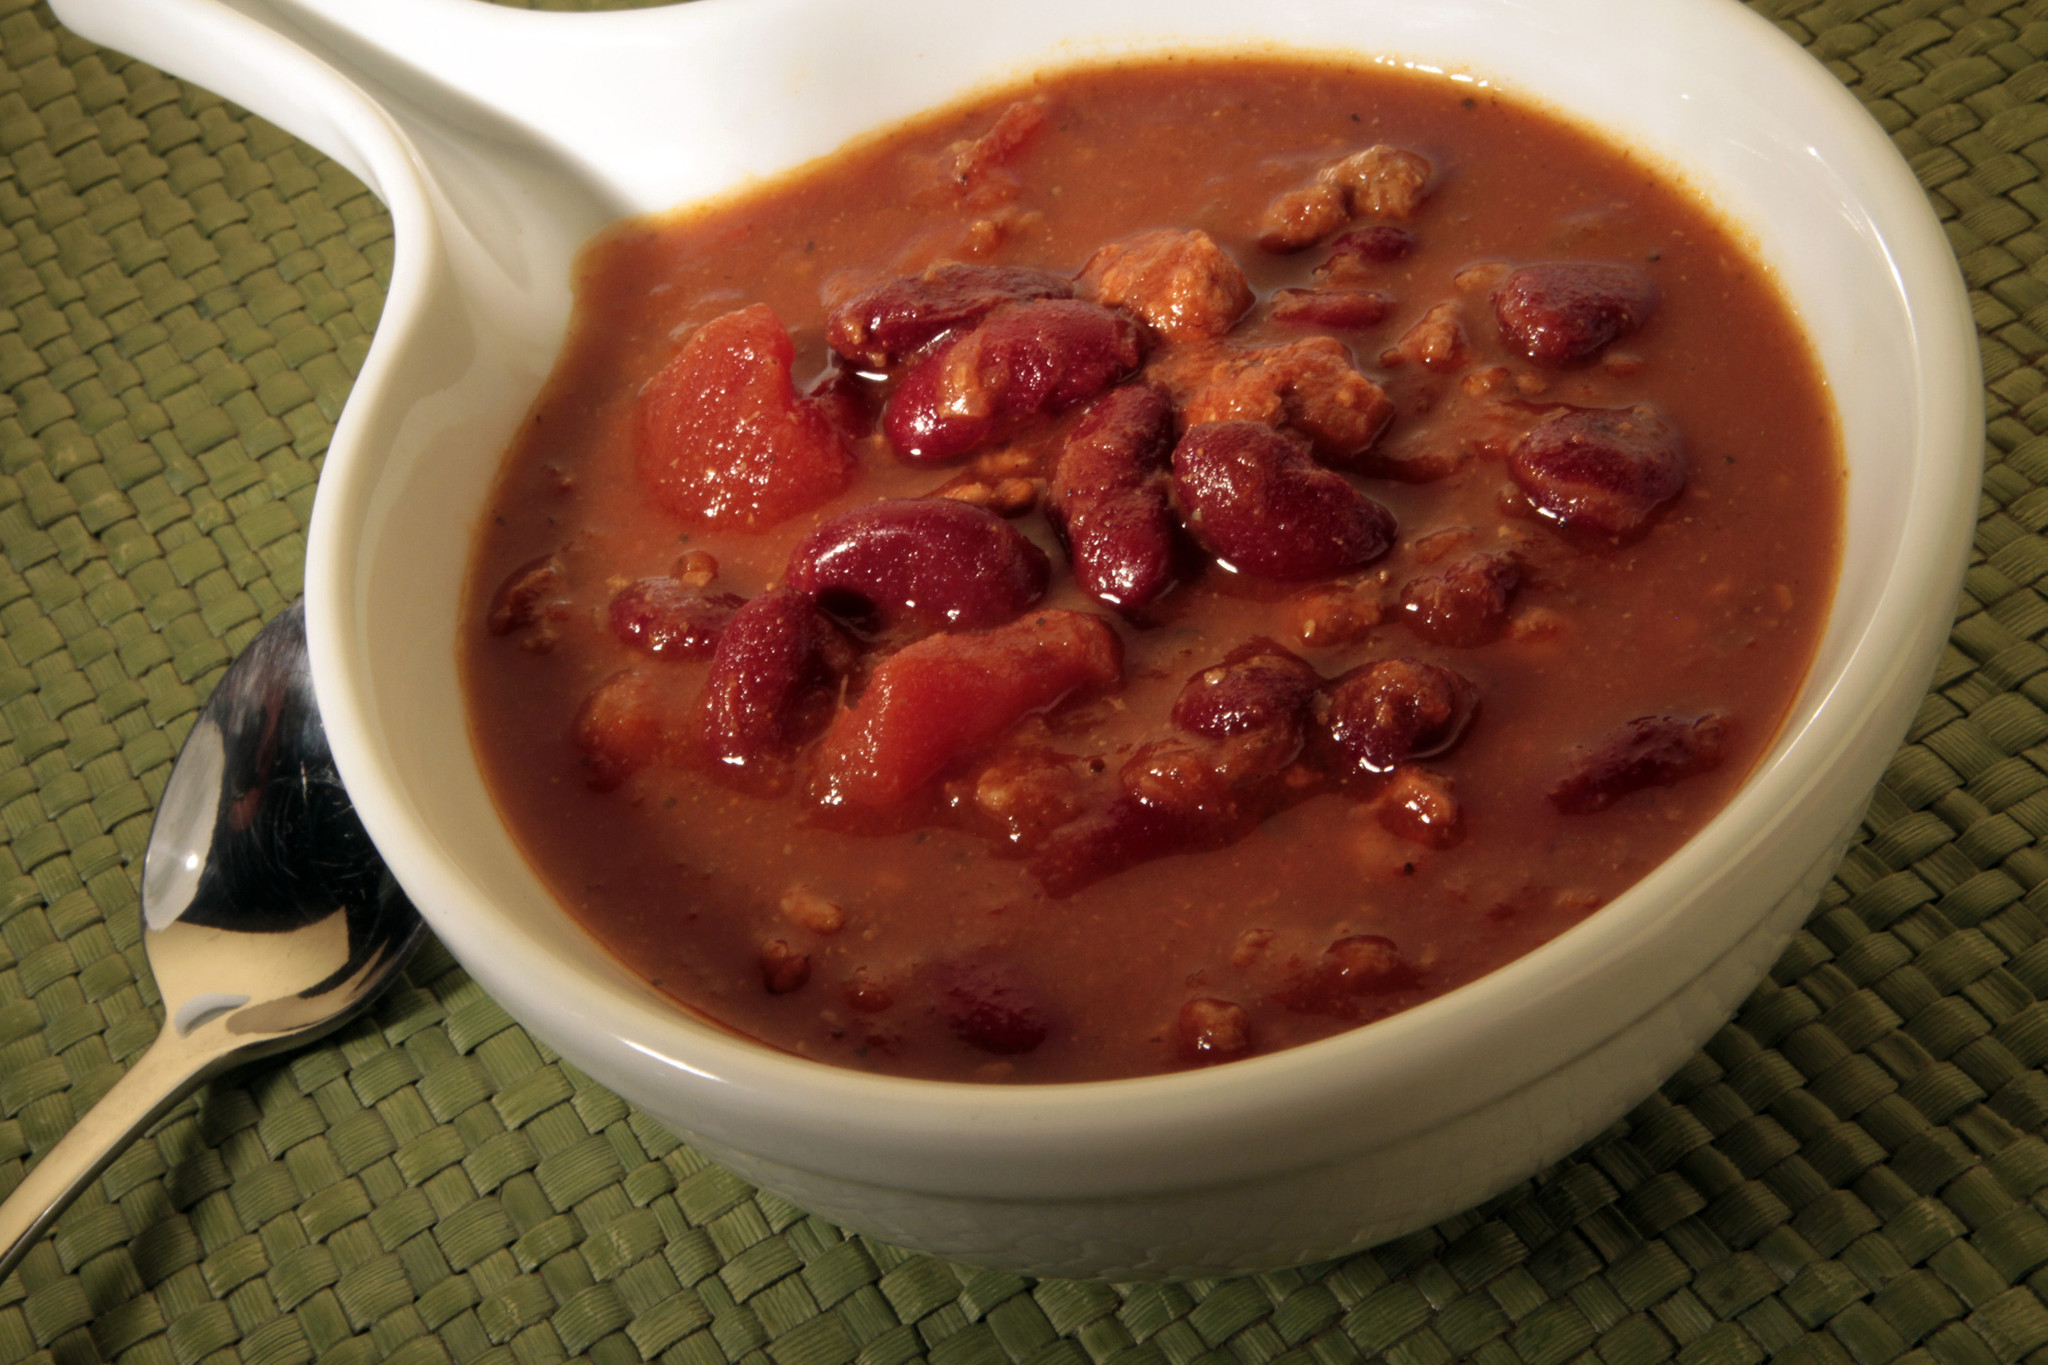 Super Bowl Sunday dip and chili recipes that score